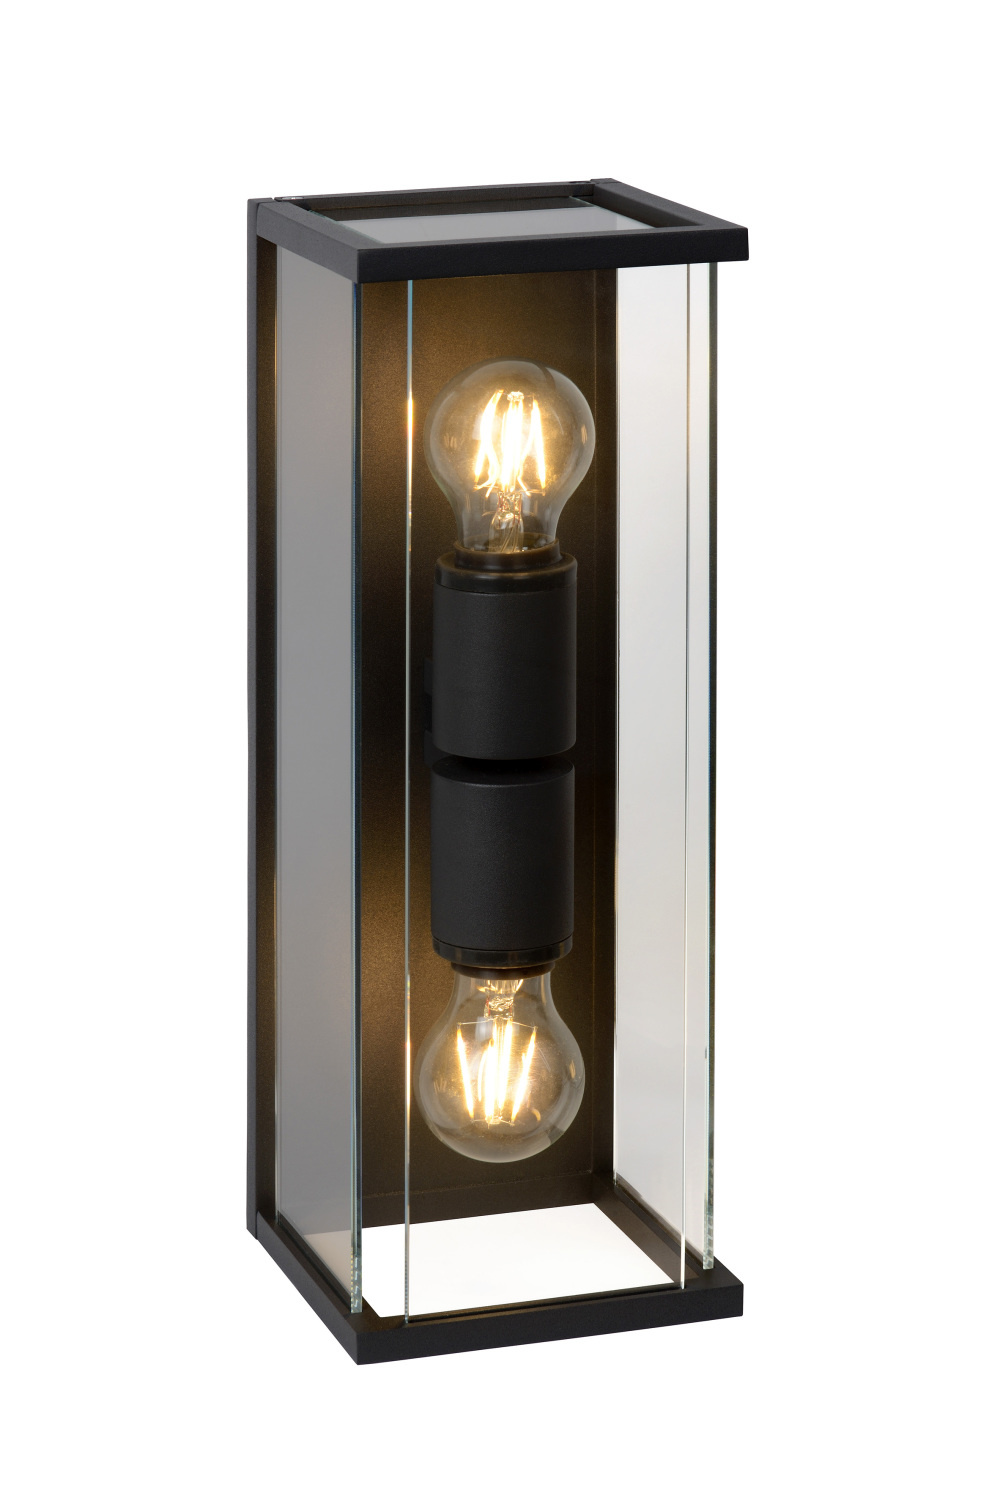 Lucide CLAIRE-LED Wandlicht IP54 2xE27 Max 60W Antracie